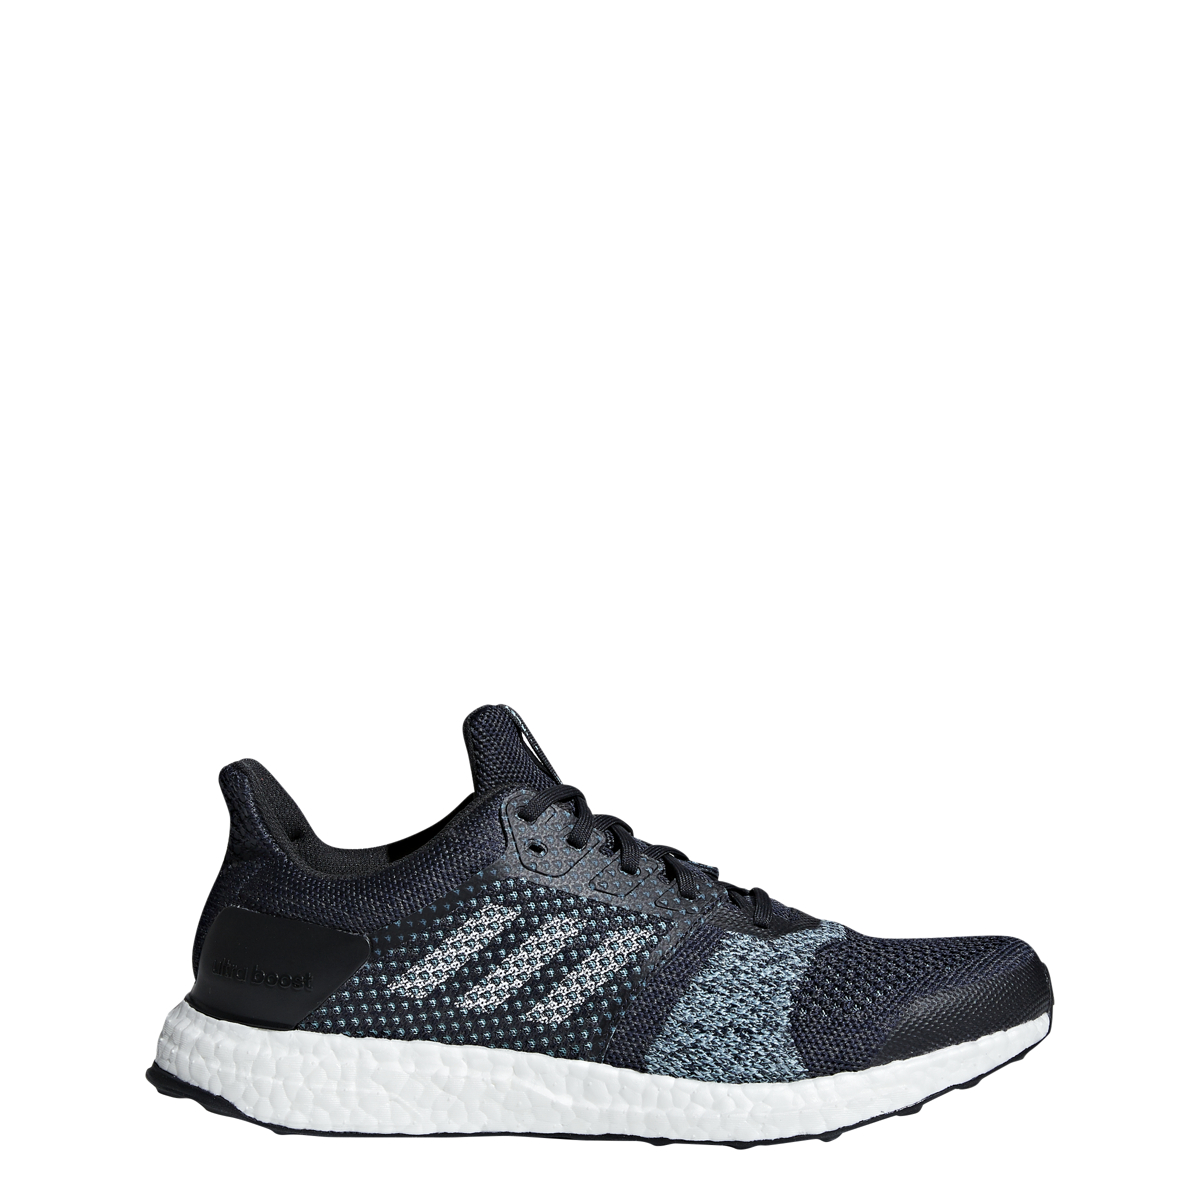 promo code 75827 fab50 ... Men s Adidas Ultraboost Ultraboost Ultraboost ST M Running Shoe Legend  Ink Clear Mint Hi ...